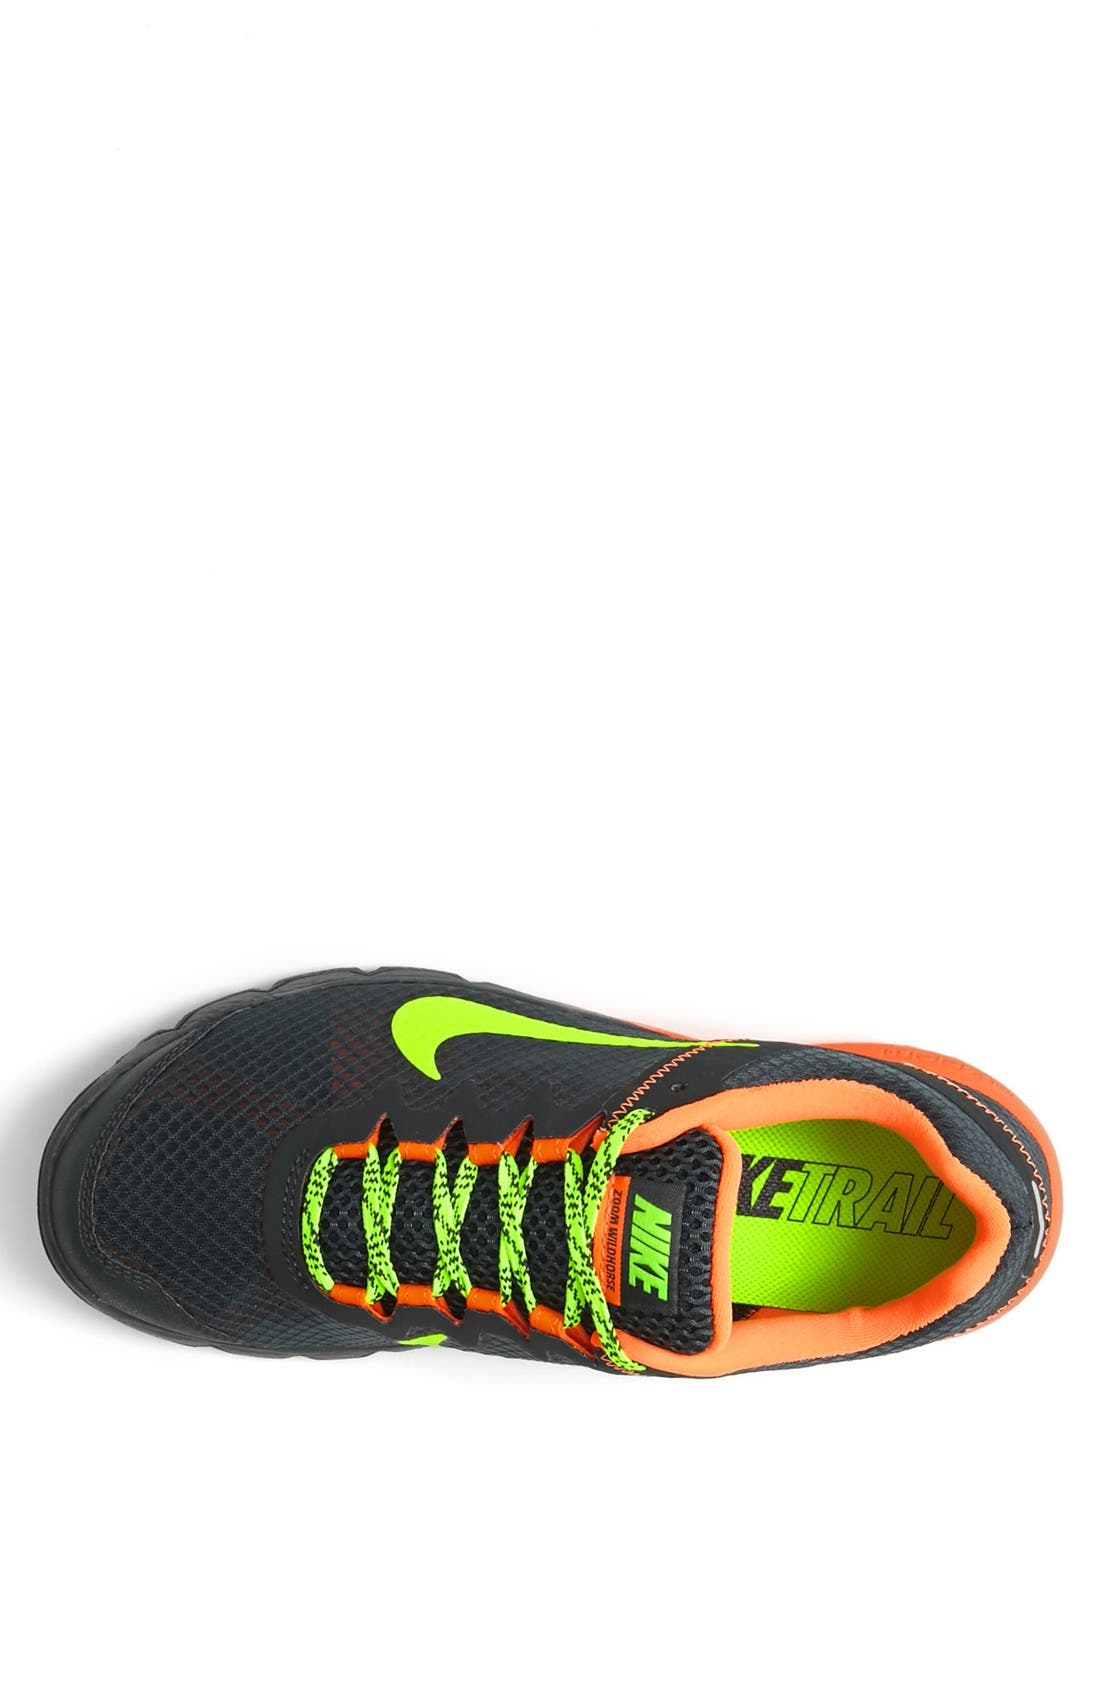 Alternate Image 3  - Nike 'Zoom Wildhorse' Trail Running Shoe (Men)